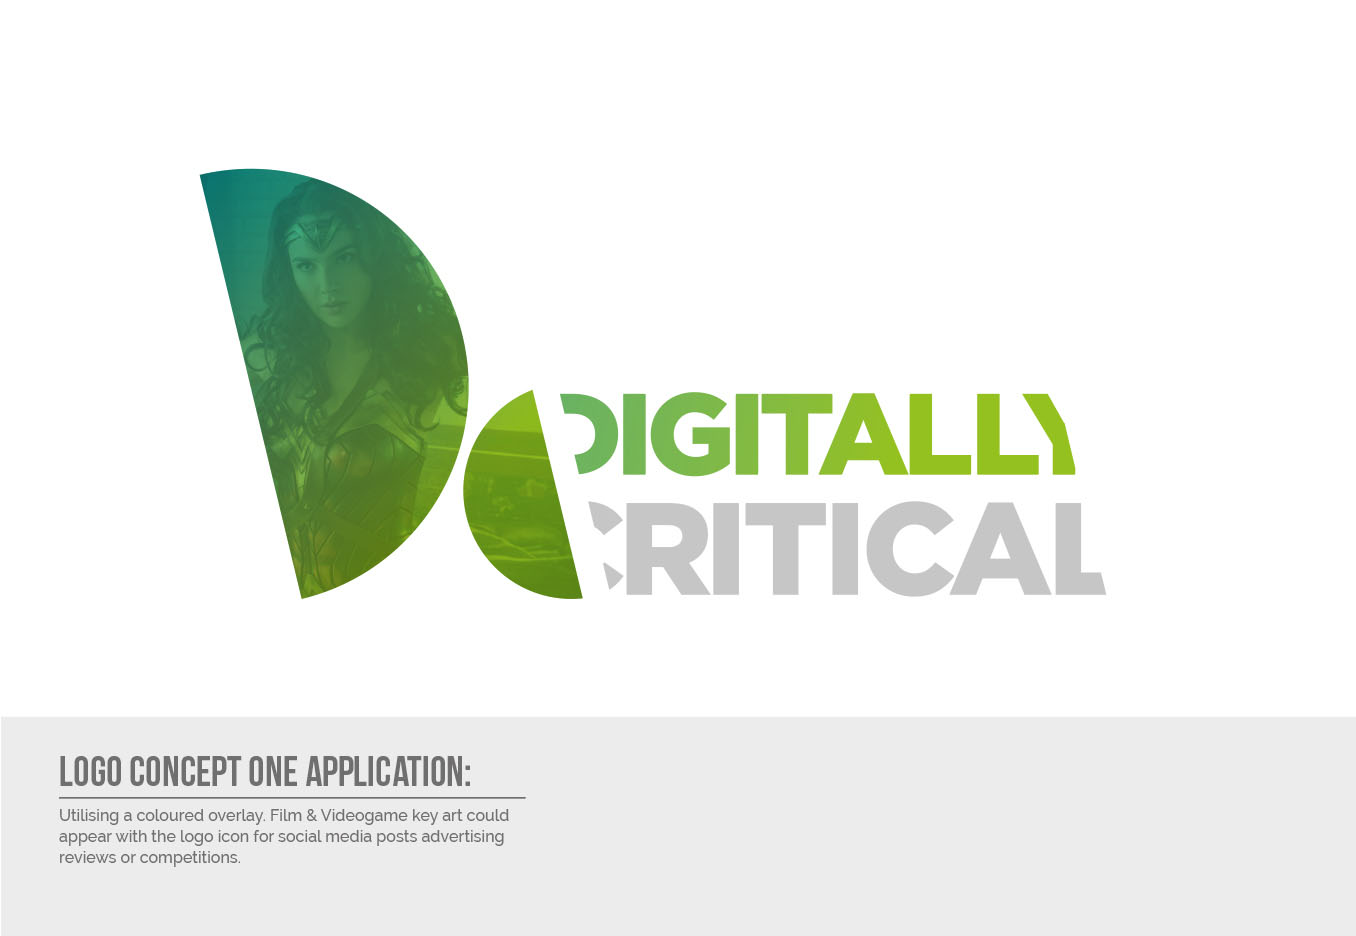 Digitally Critical Logo Design - Concept One Application